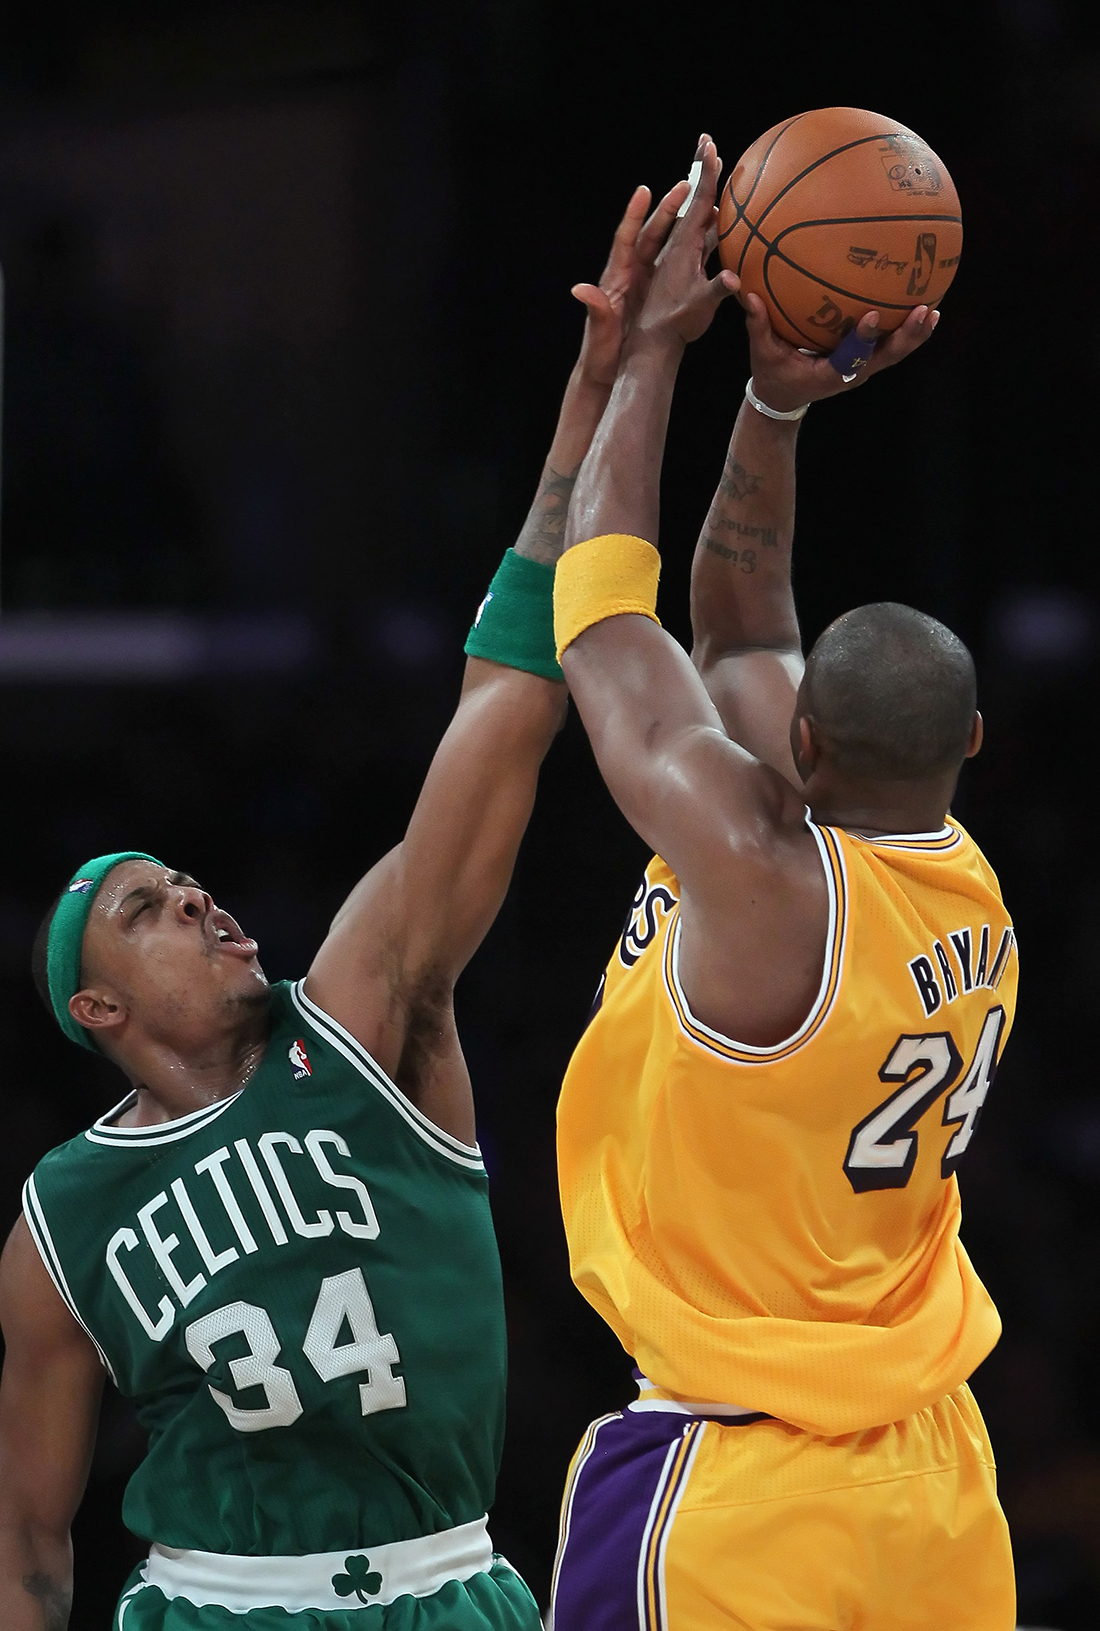 La verdad de Paul Pierce por viva basquet